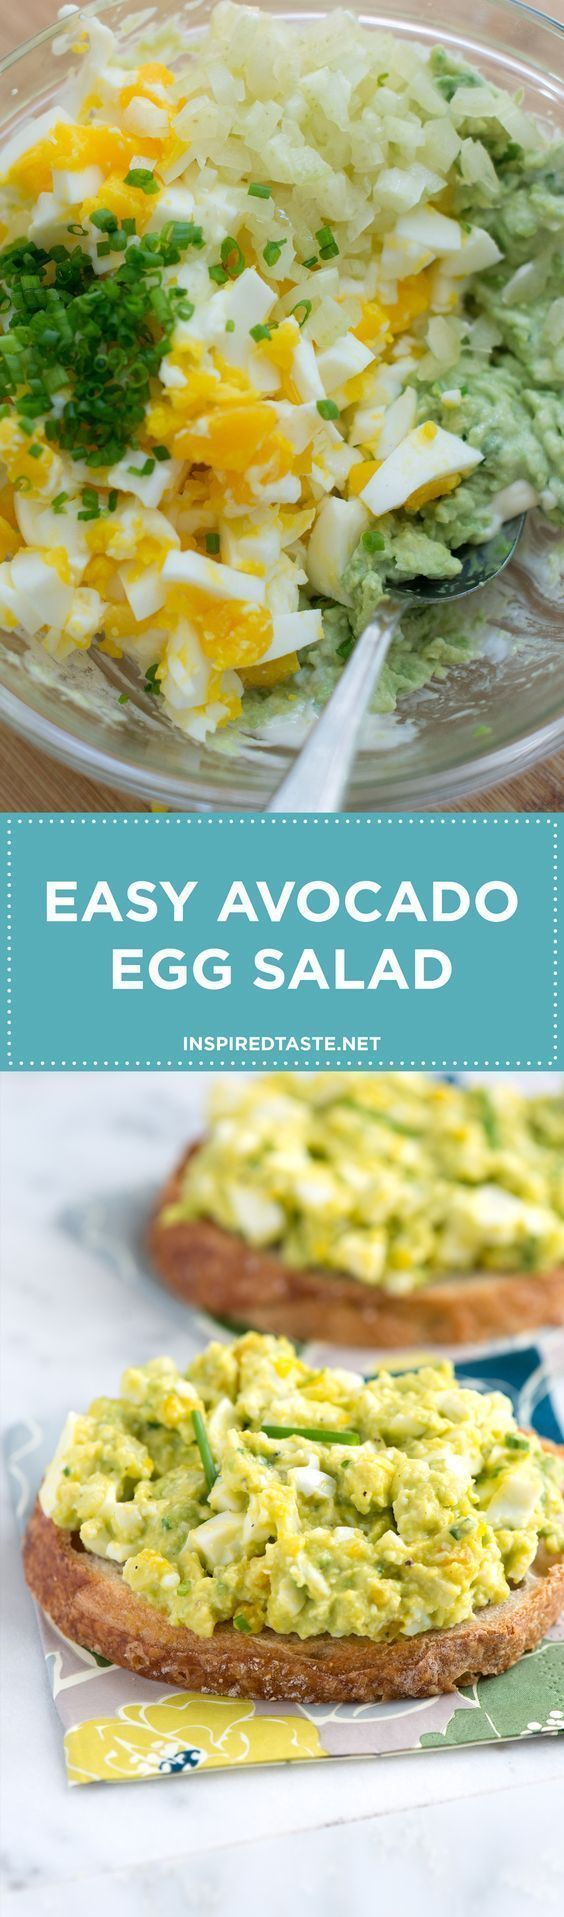 Our avocado egg salad recipe is very simple, all you need to do is mash avocado with a tiny bit of mayonnaise then stir in chopped eggs, celery, lemon juice and herbs. You could even swap nonfat or low-fat yogurt for the mayonnaise (sour cream works, too) simple paleo dinner